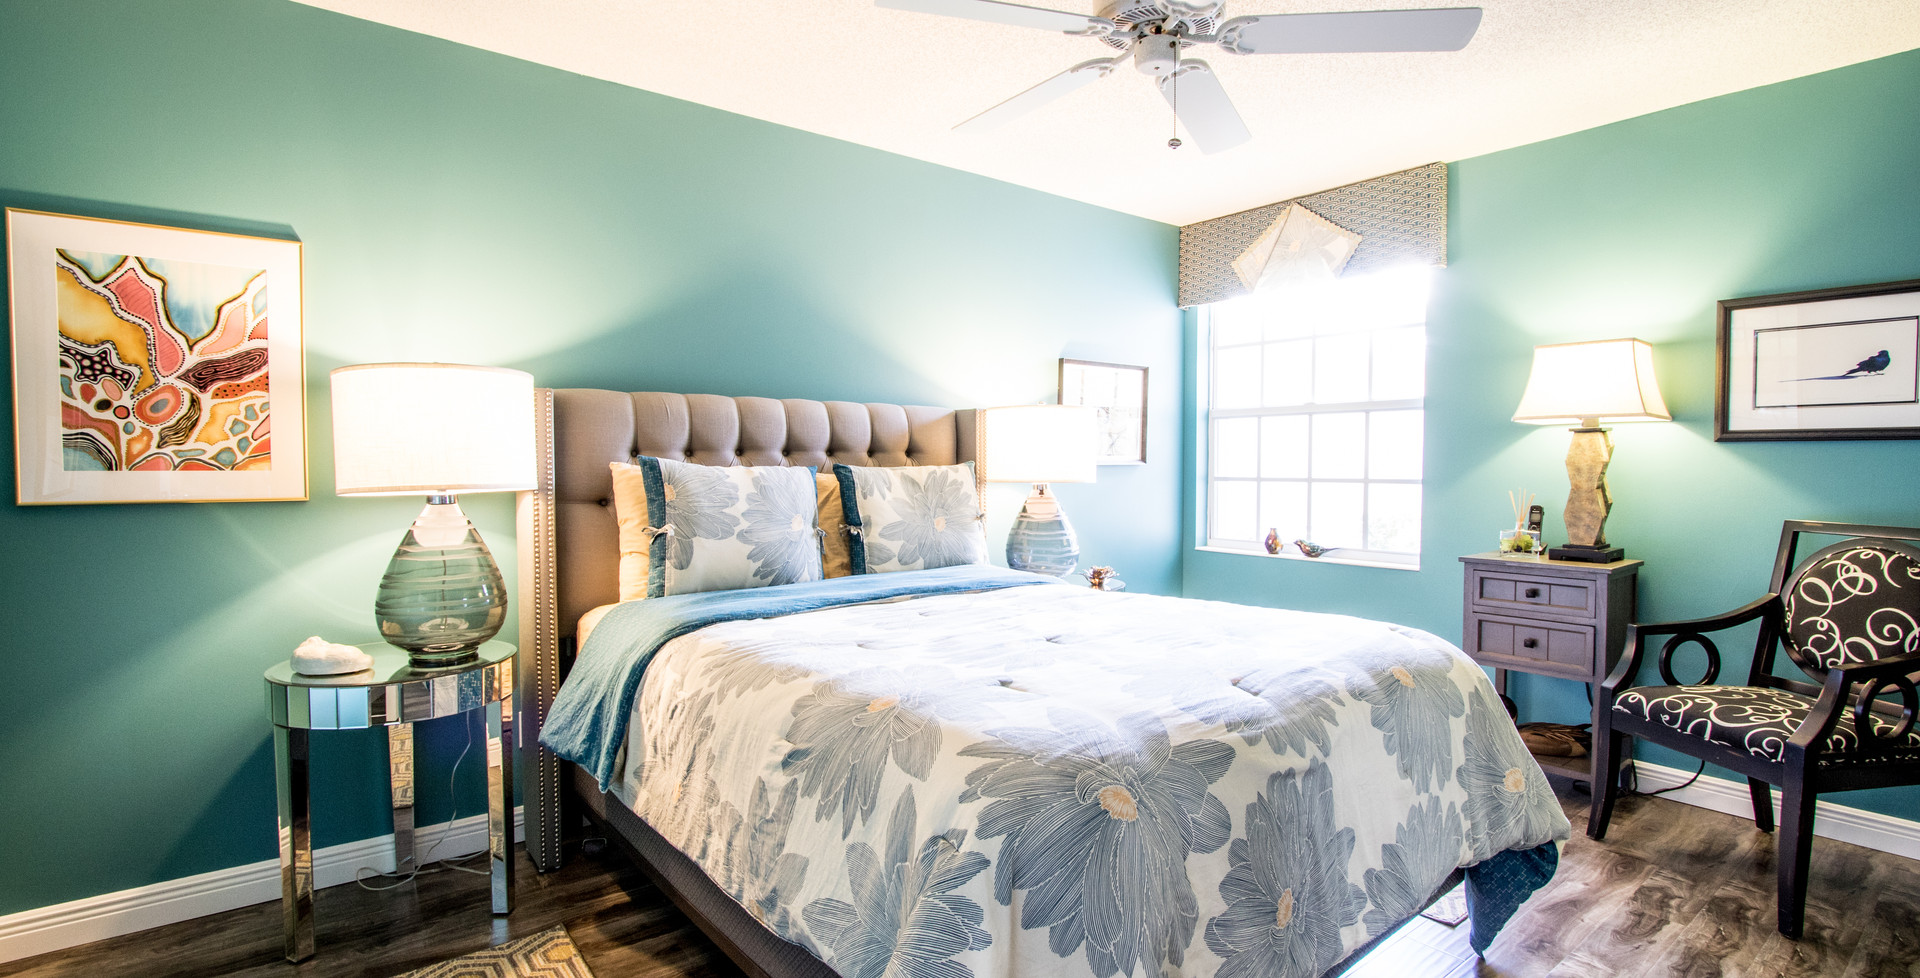 After bright bedroom design with blue/green walls